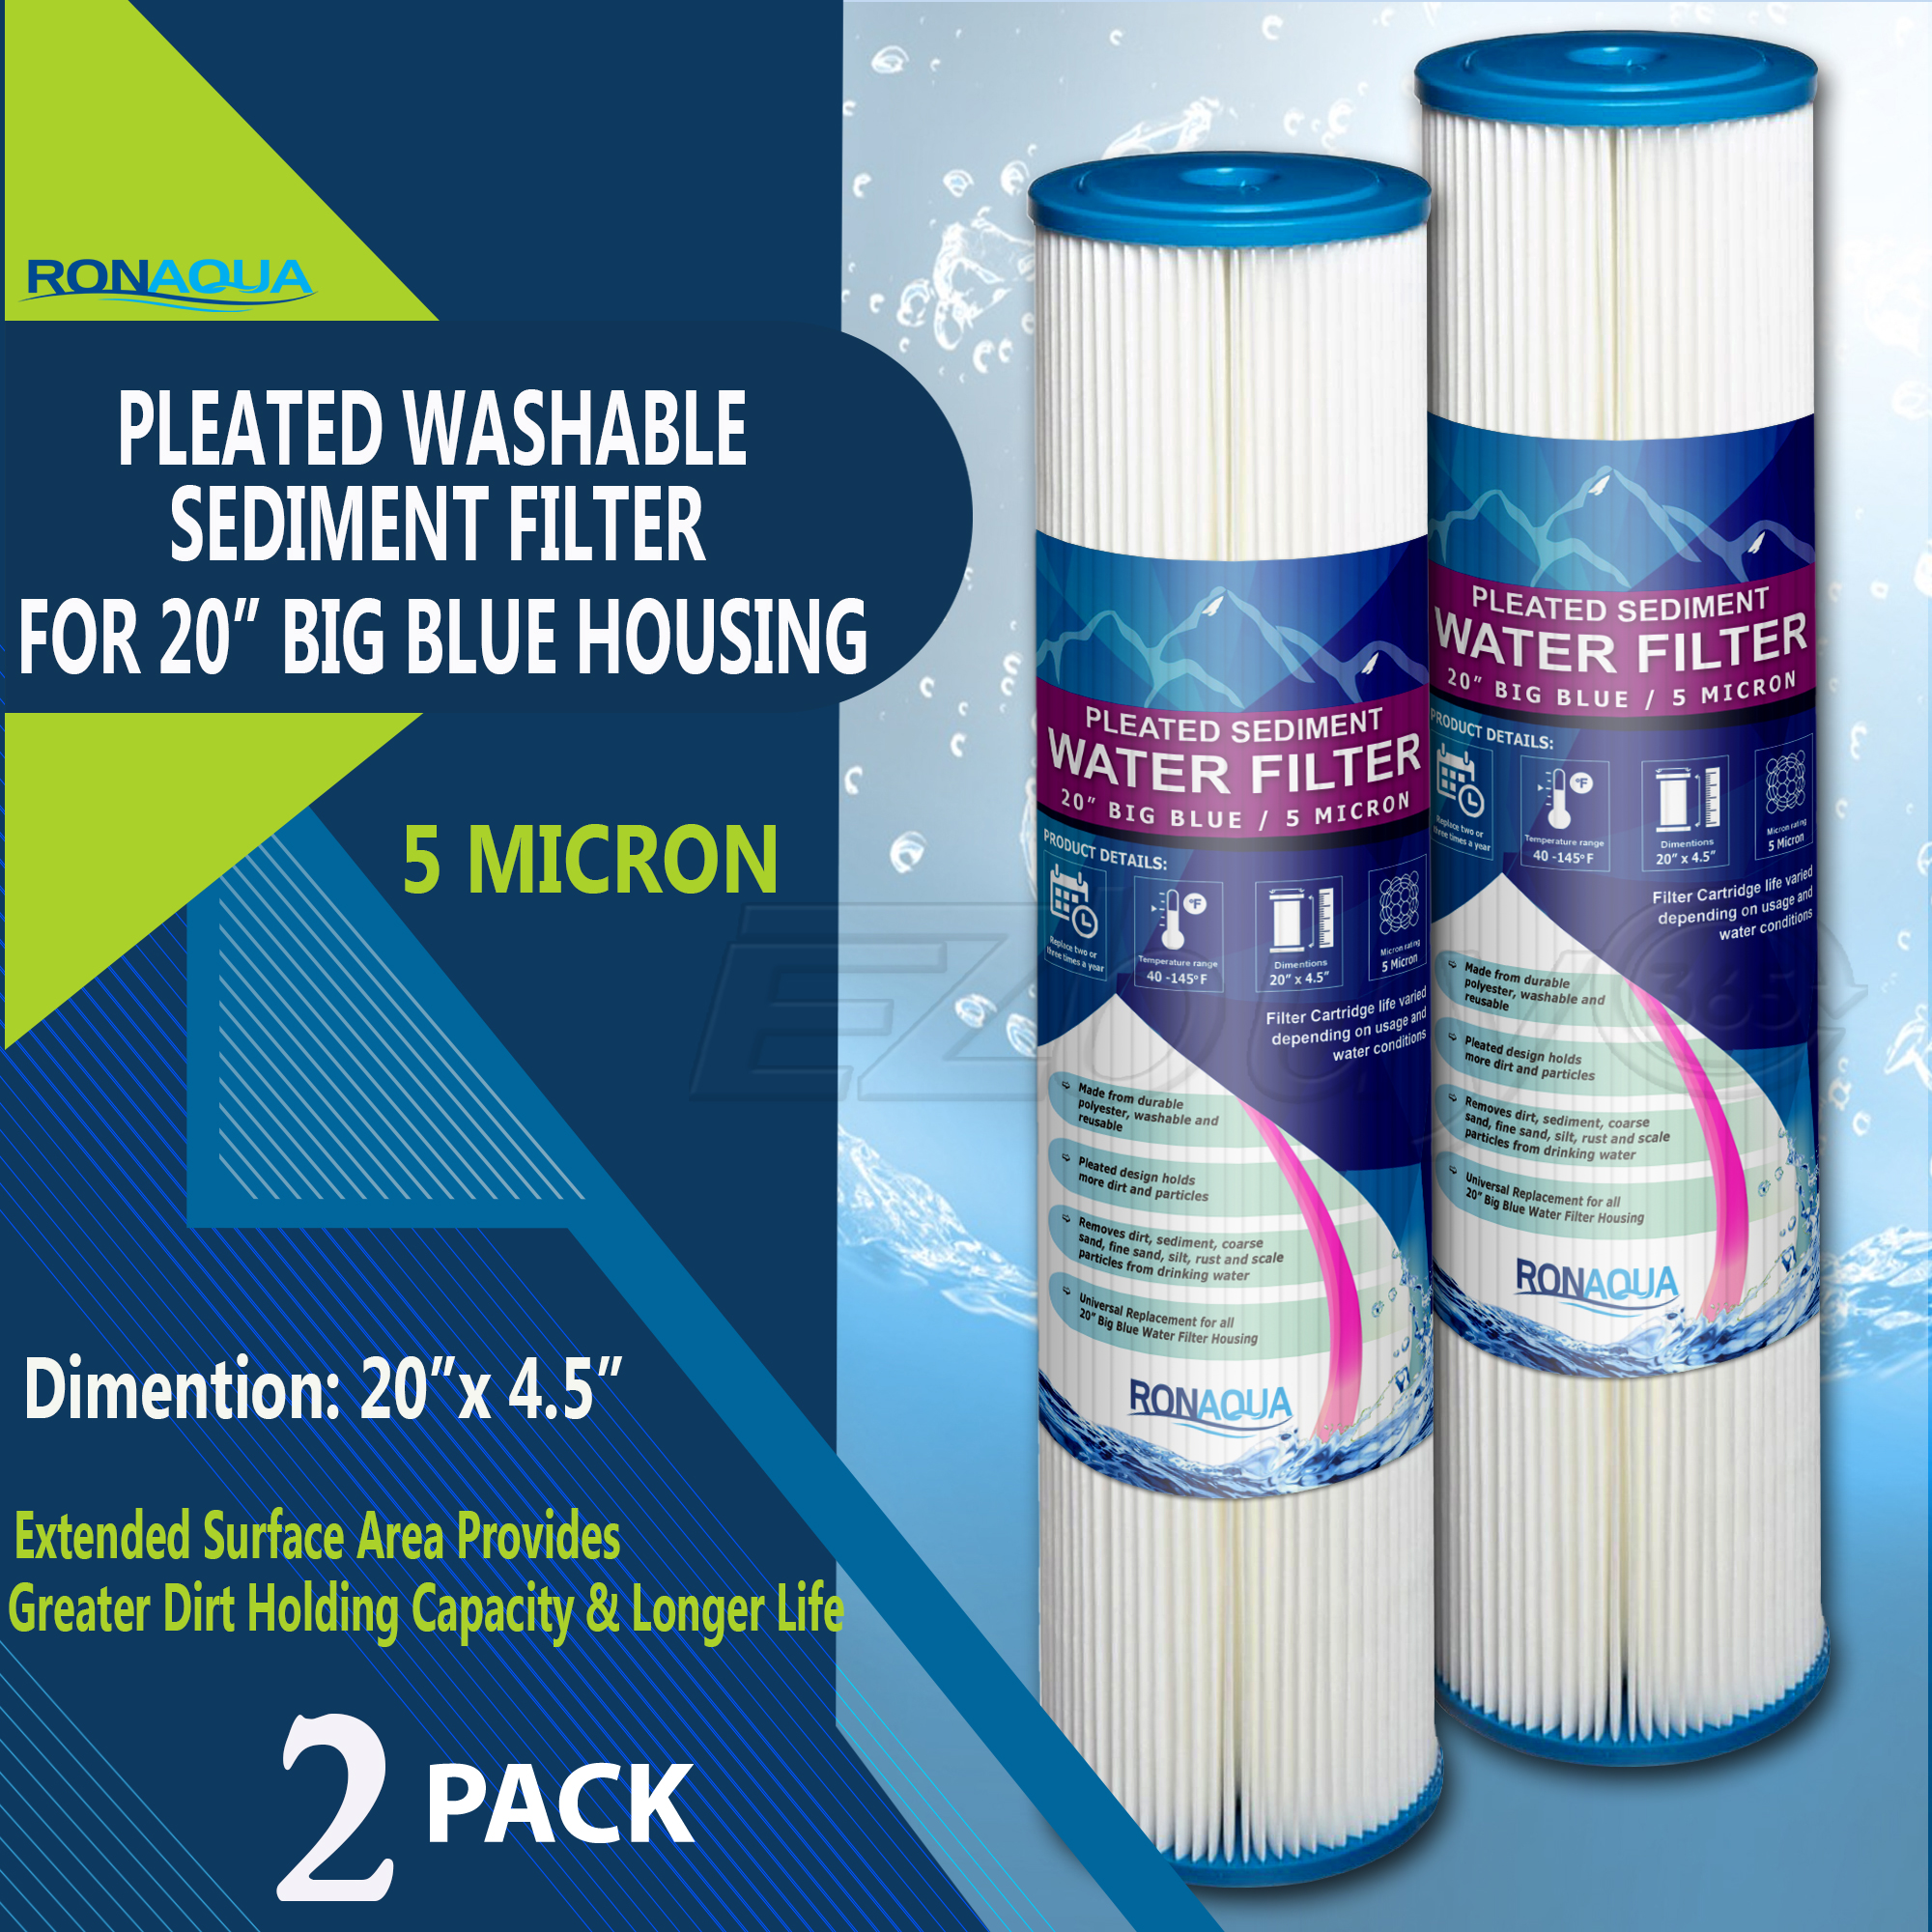 "Big Blue Pleated Washable & Reusable Sediment Filter 5 Micron Amplified Surface Area, Removes Sand, Dirt, Silt, Rust, Extended Filter Life for 20"" Big Blue Housing, by Ronaqua (Set of 2)"